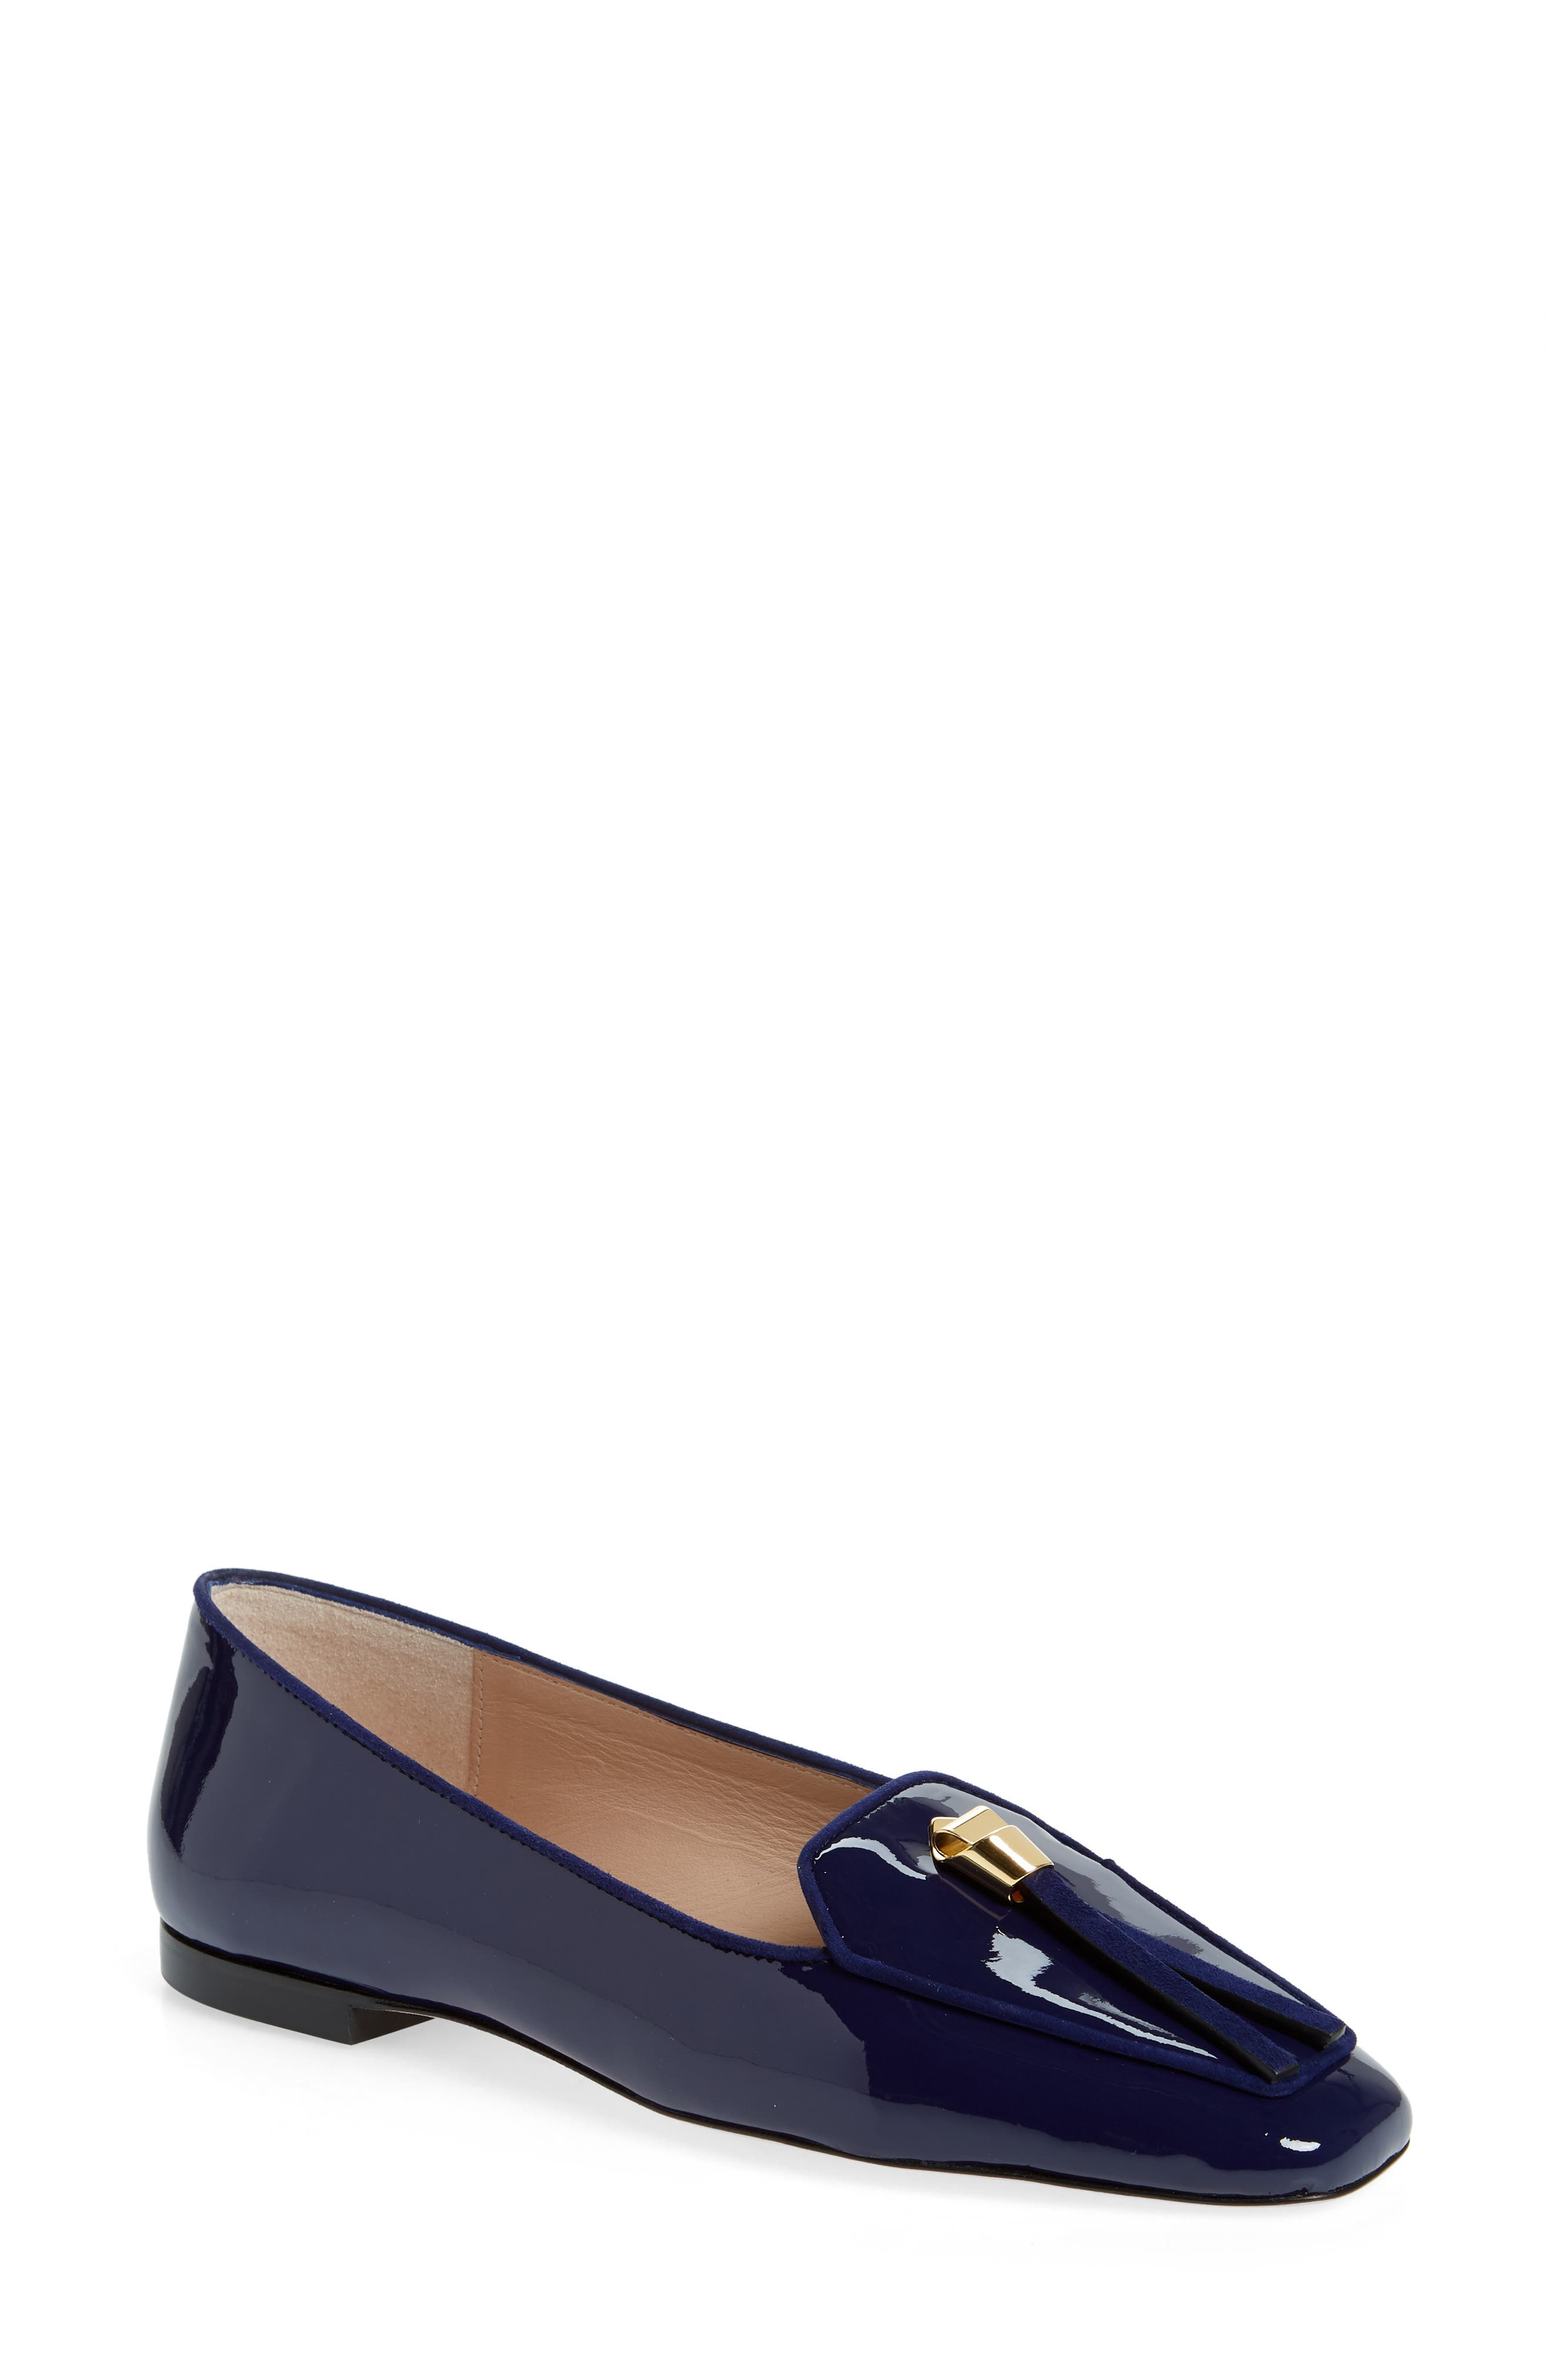 Stuart Weitzman Slipknot Loafer, Blue